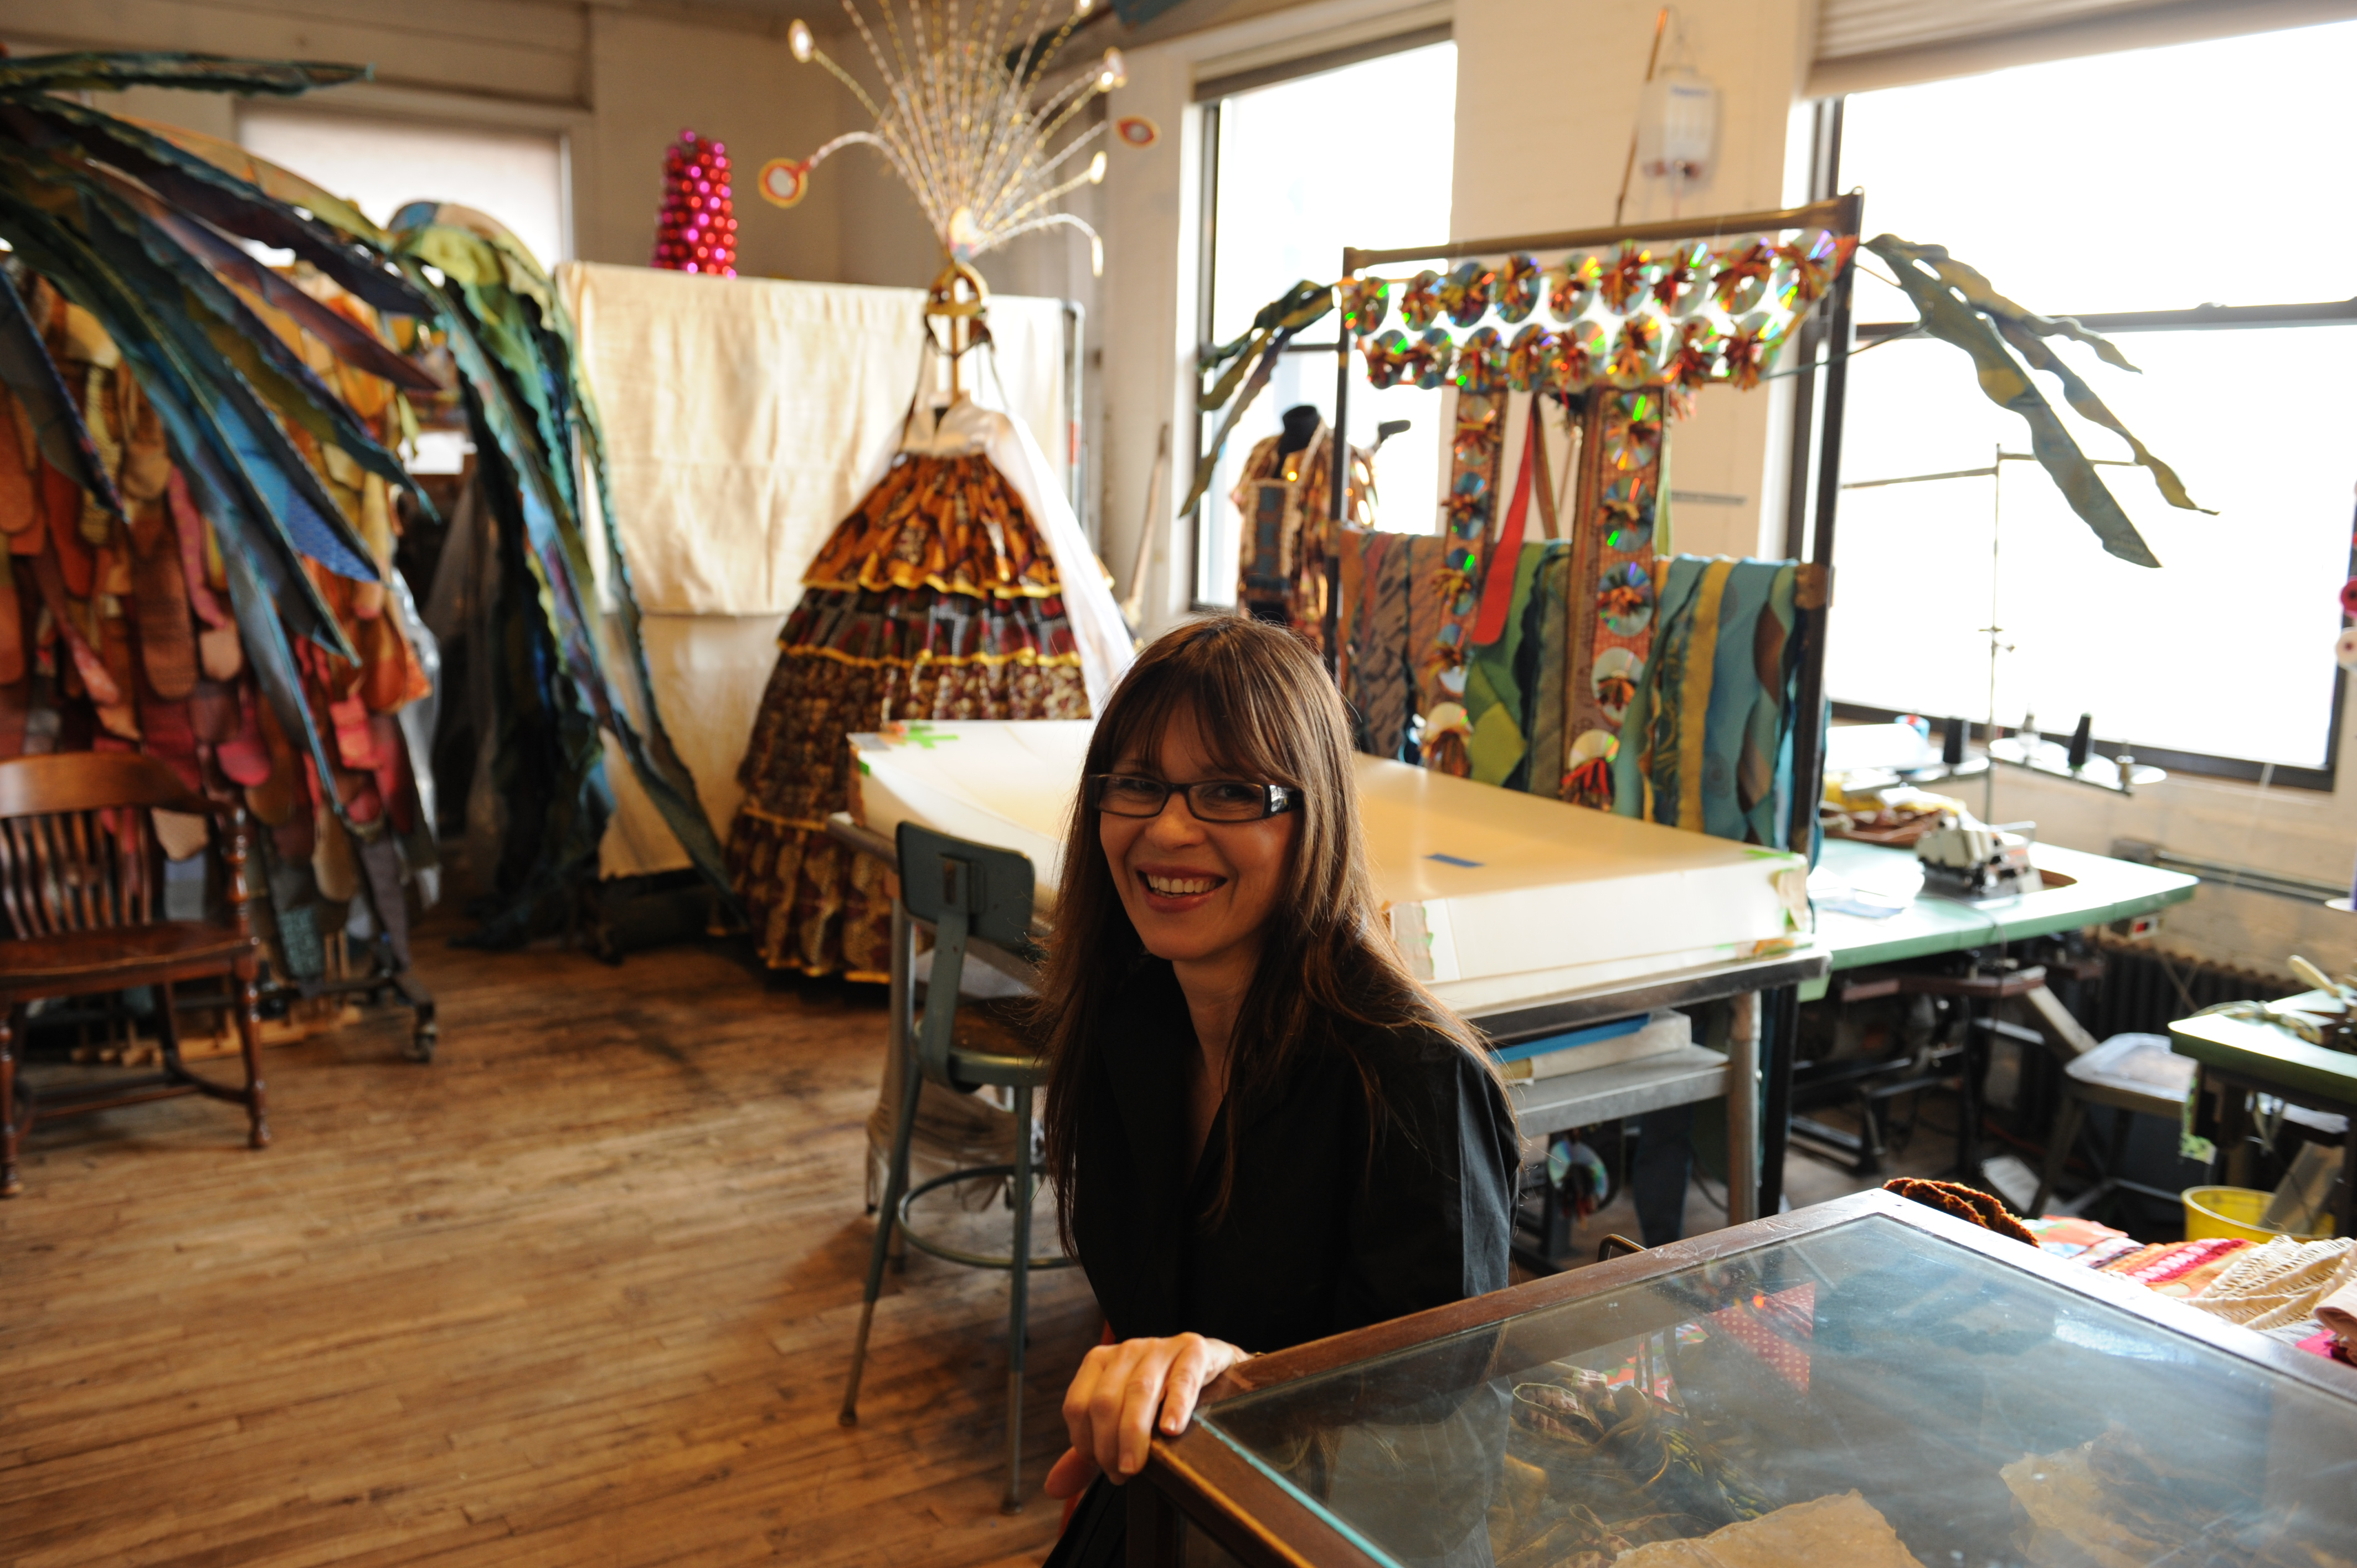 Laura Anderson Barbata at her studio in Soho with round table guests. Guests include Tim Rollins and KOS, ..Laura Anderson Barbata works in photography, video, drawing, sculpture, installation, and public art...photo © Stefan Falke